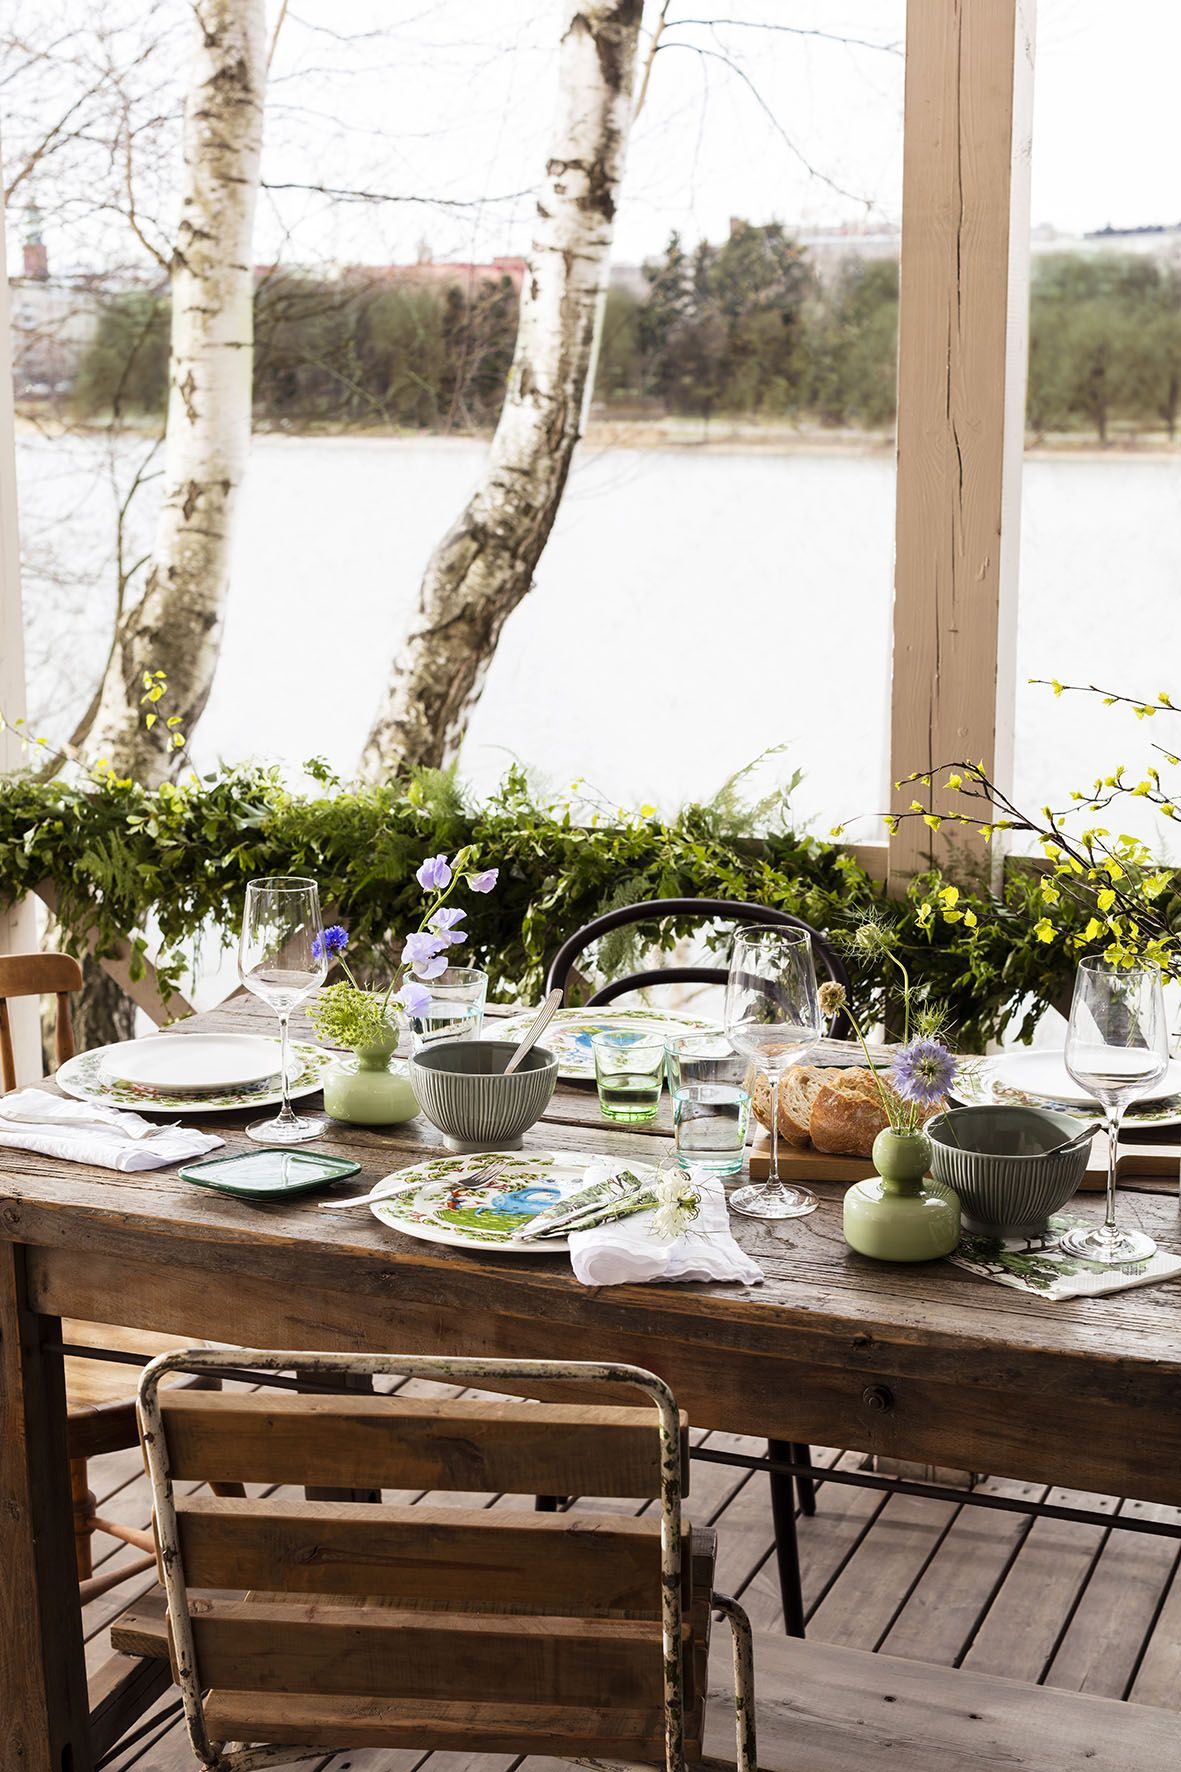 Mid Summer table setting is inviting and summery.